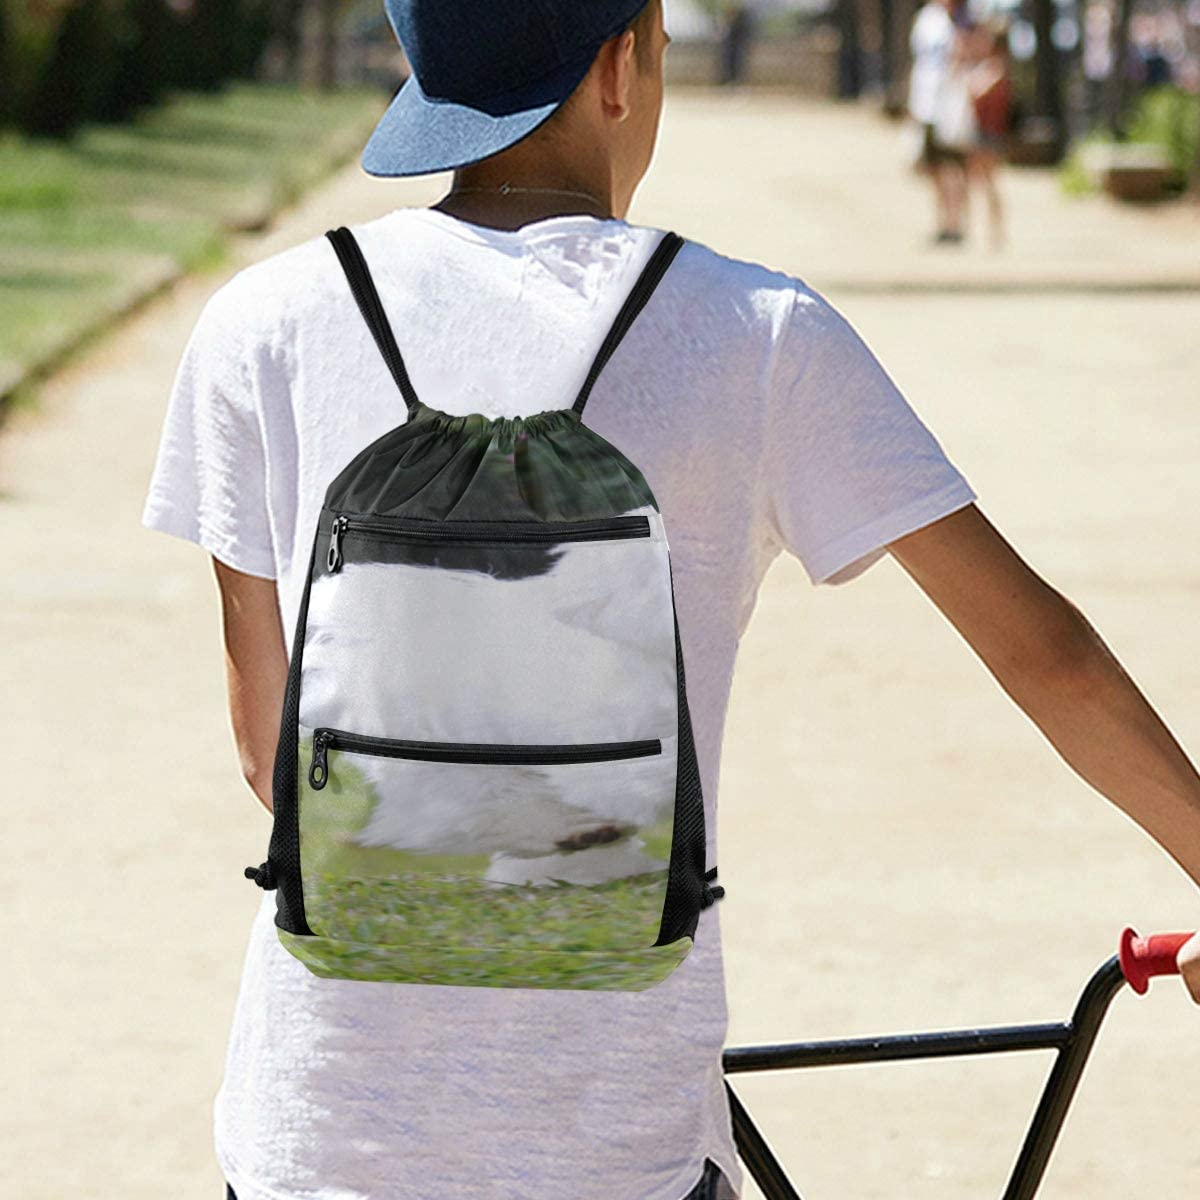 Small Backpack For Men Long Hair Maltese White Pet Unisex Drawstring Bags Bags For Women Lightweight With Zipper Pocket Sports Athletic School Travel Gym Cinch Sack